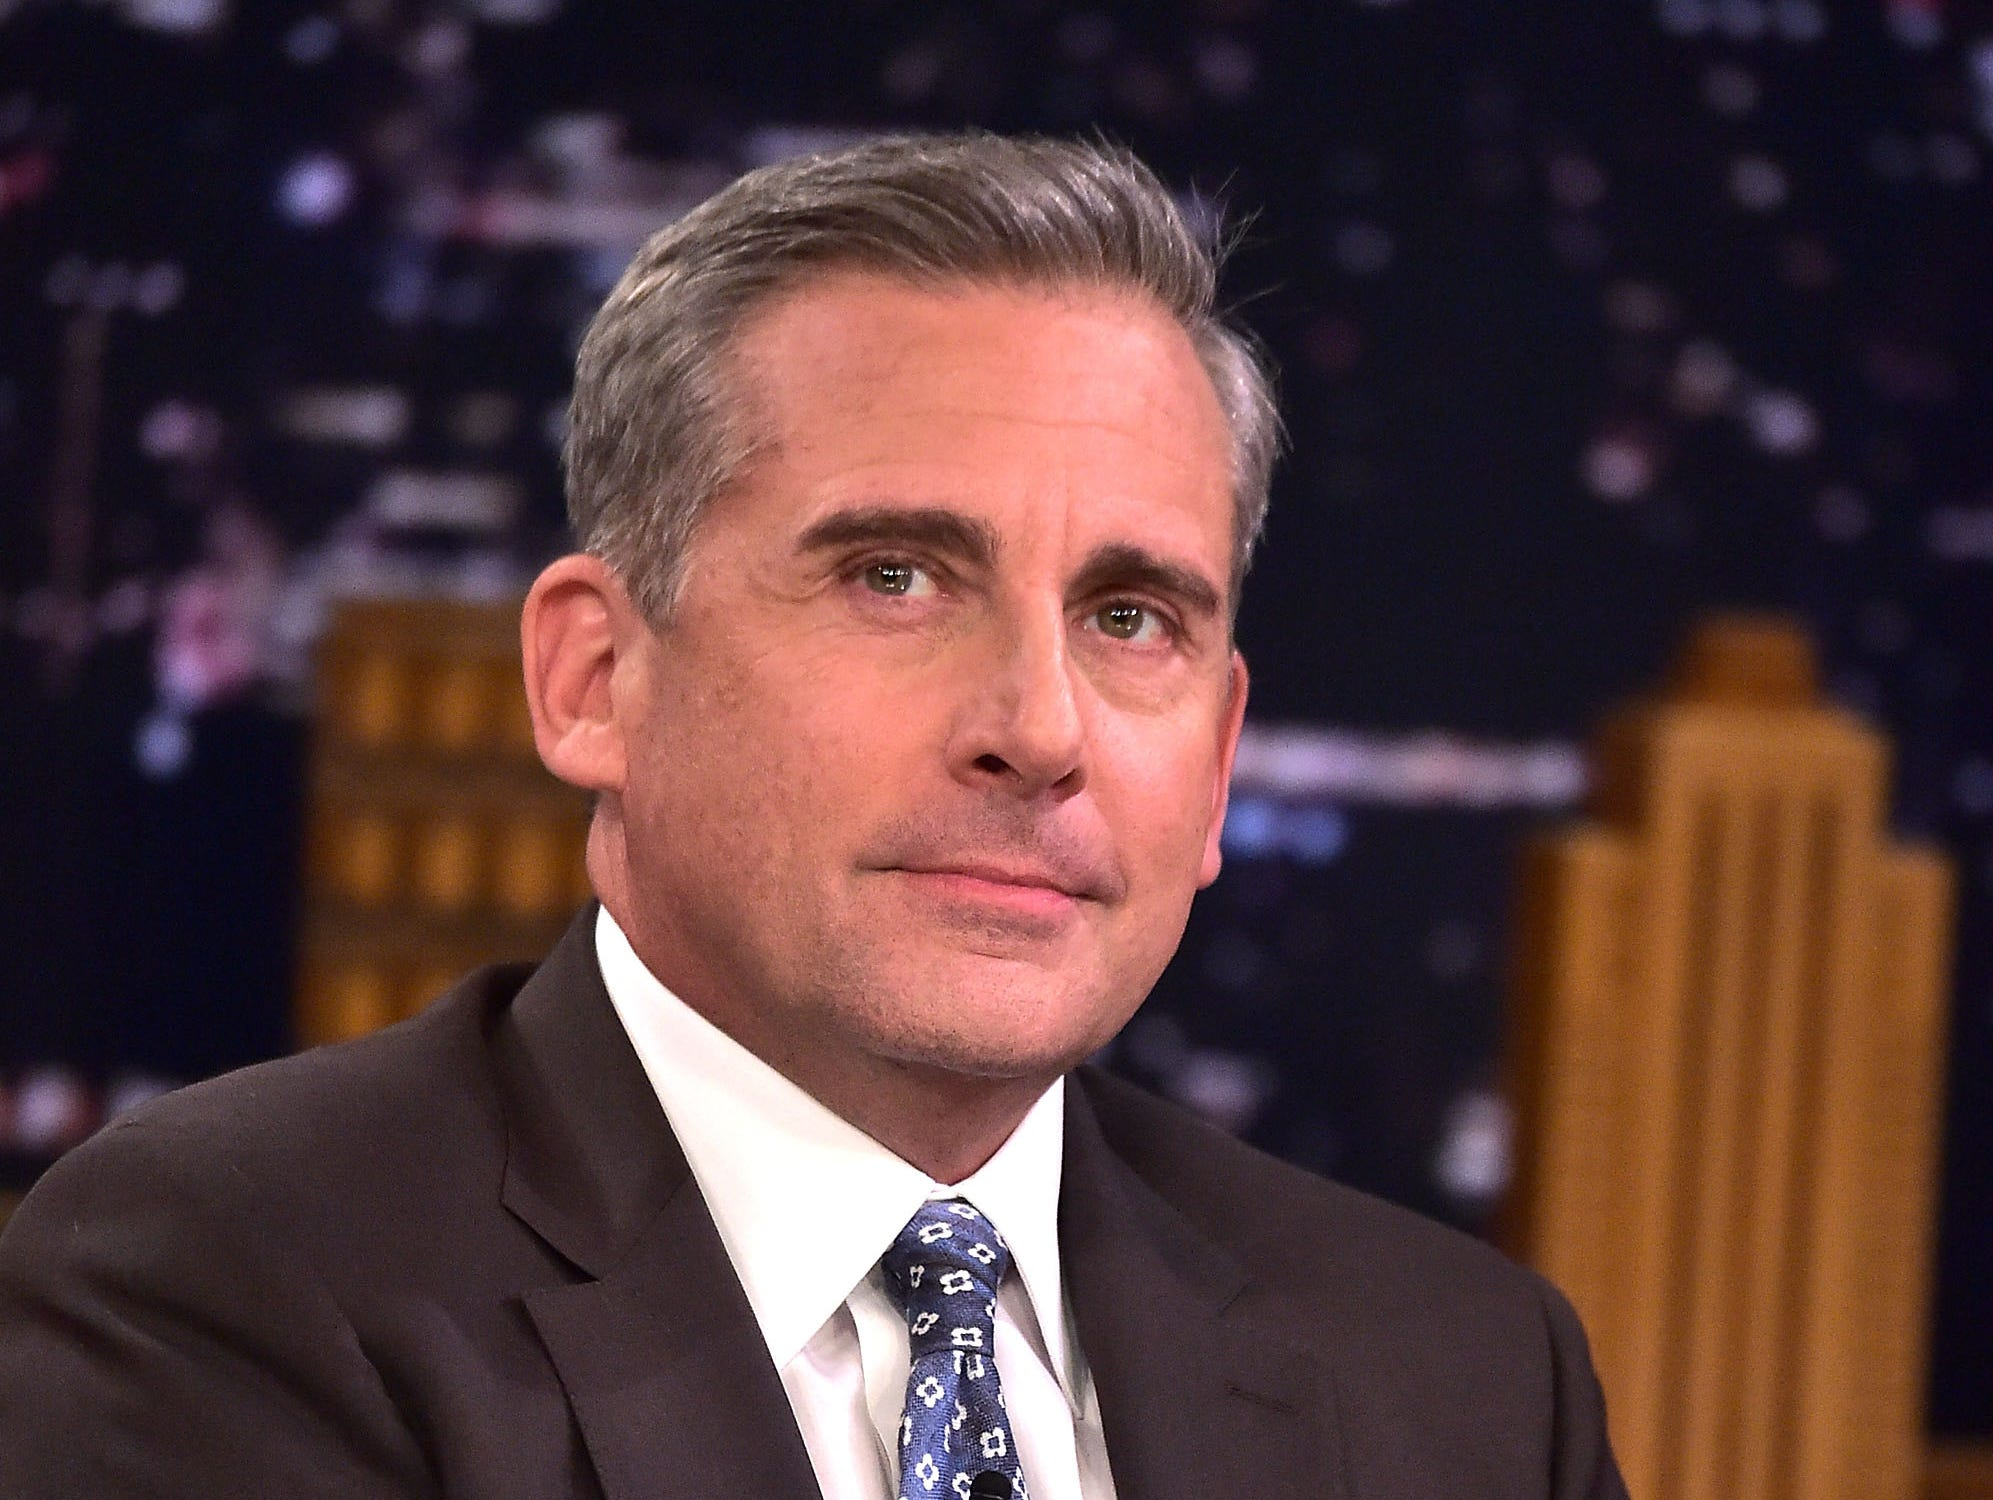 'Saturday Night Live': Steve Carell teases 'The Office' reboot during cast reunion